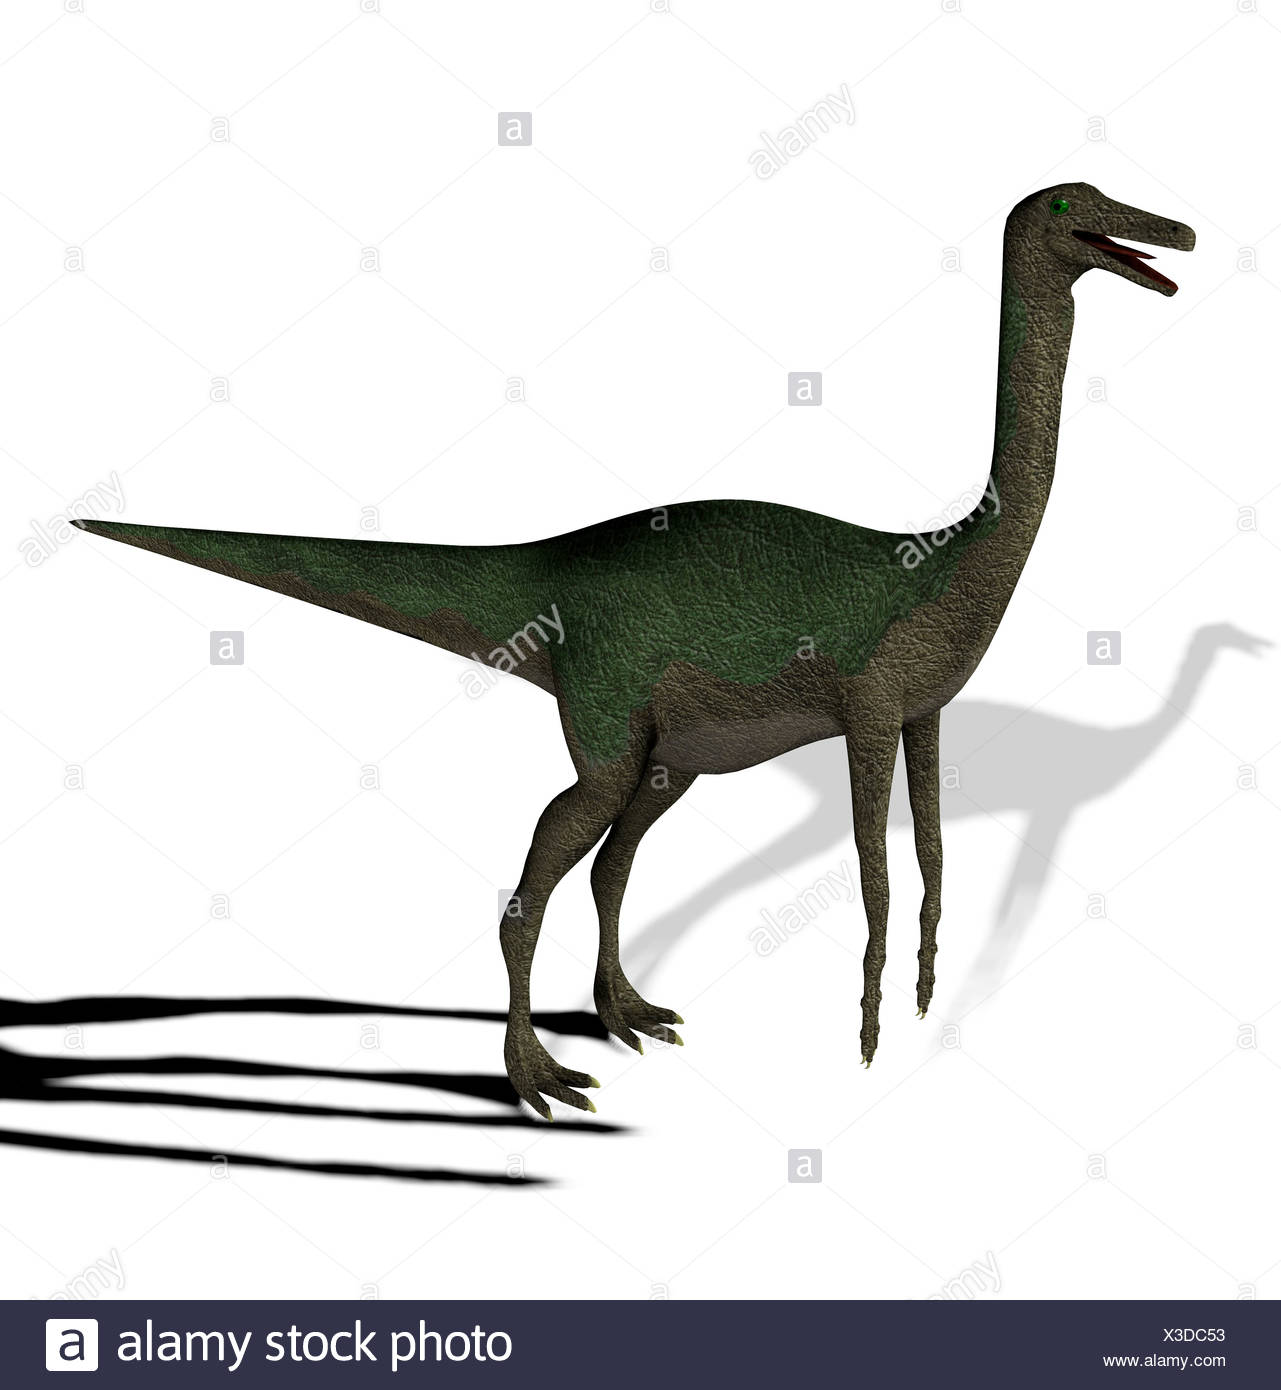 The Gallimimus seemed also chickens to imitators mentioned with a length from more than 6 meters it in the Cretaceous period Stock Photo